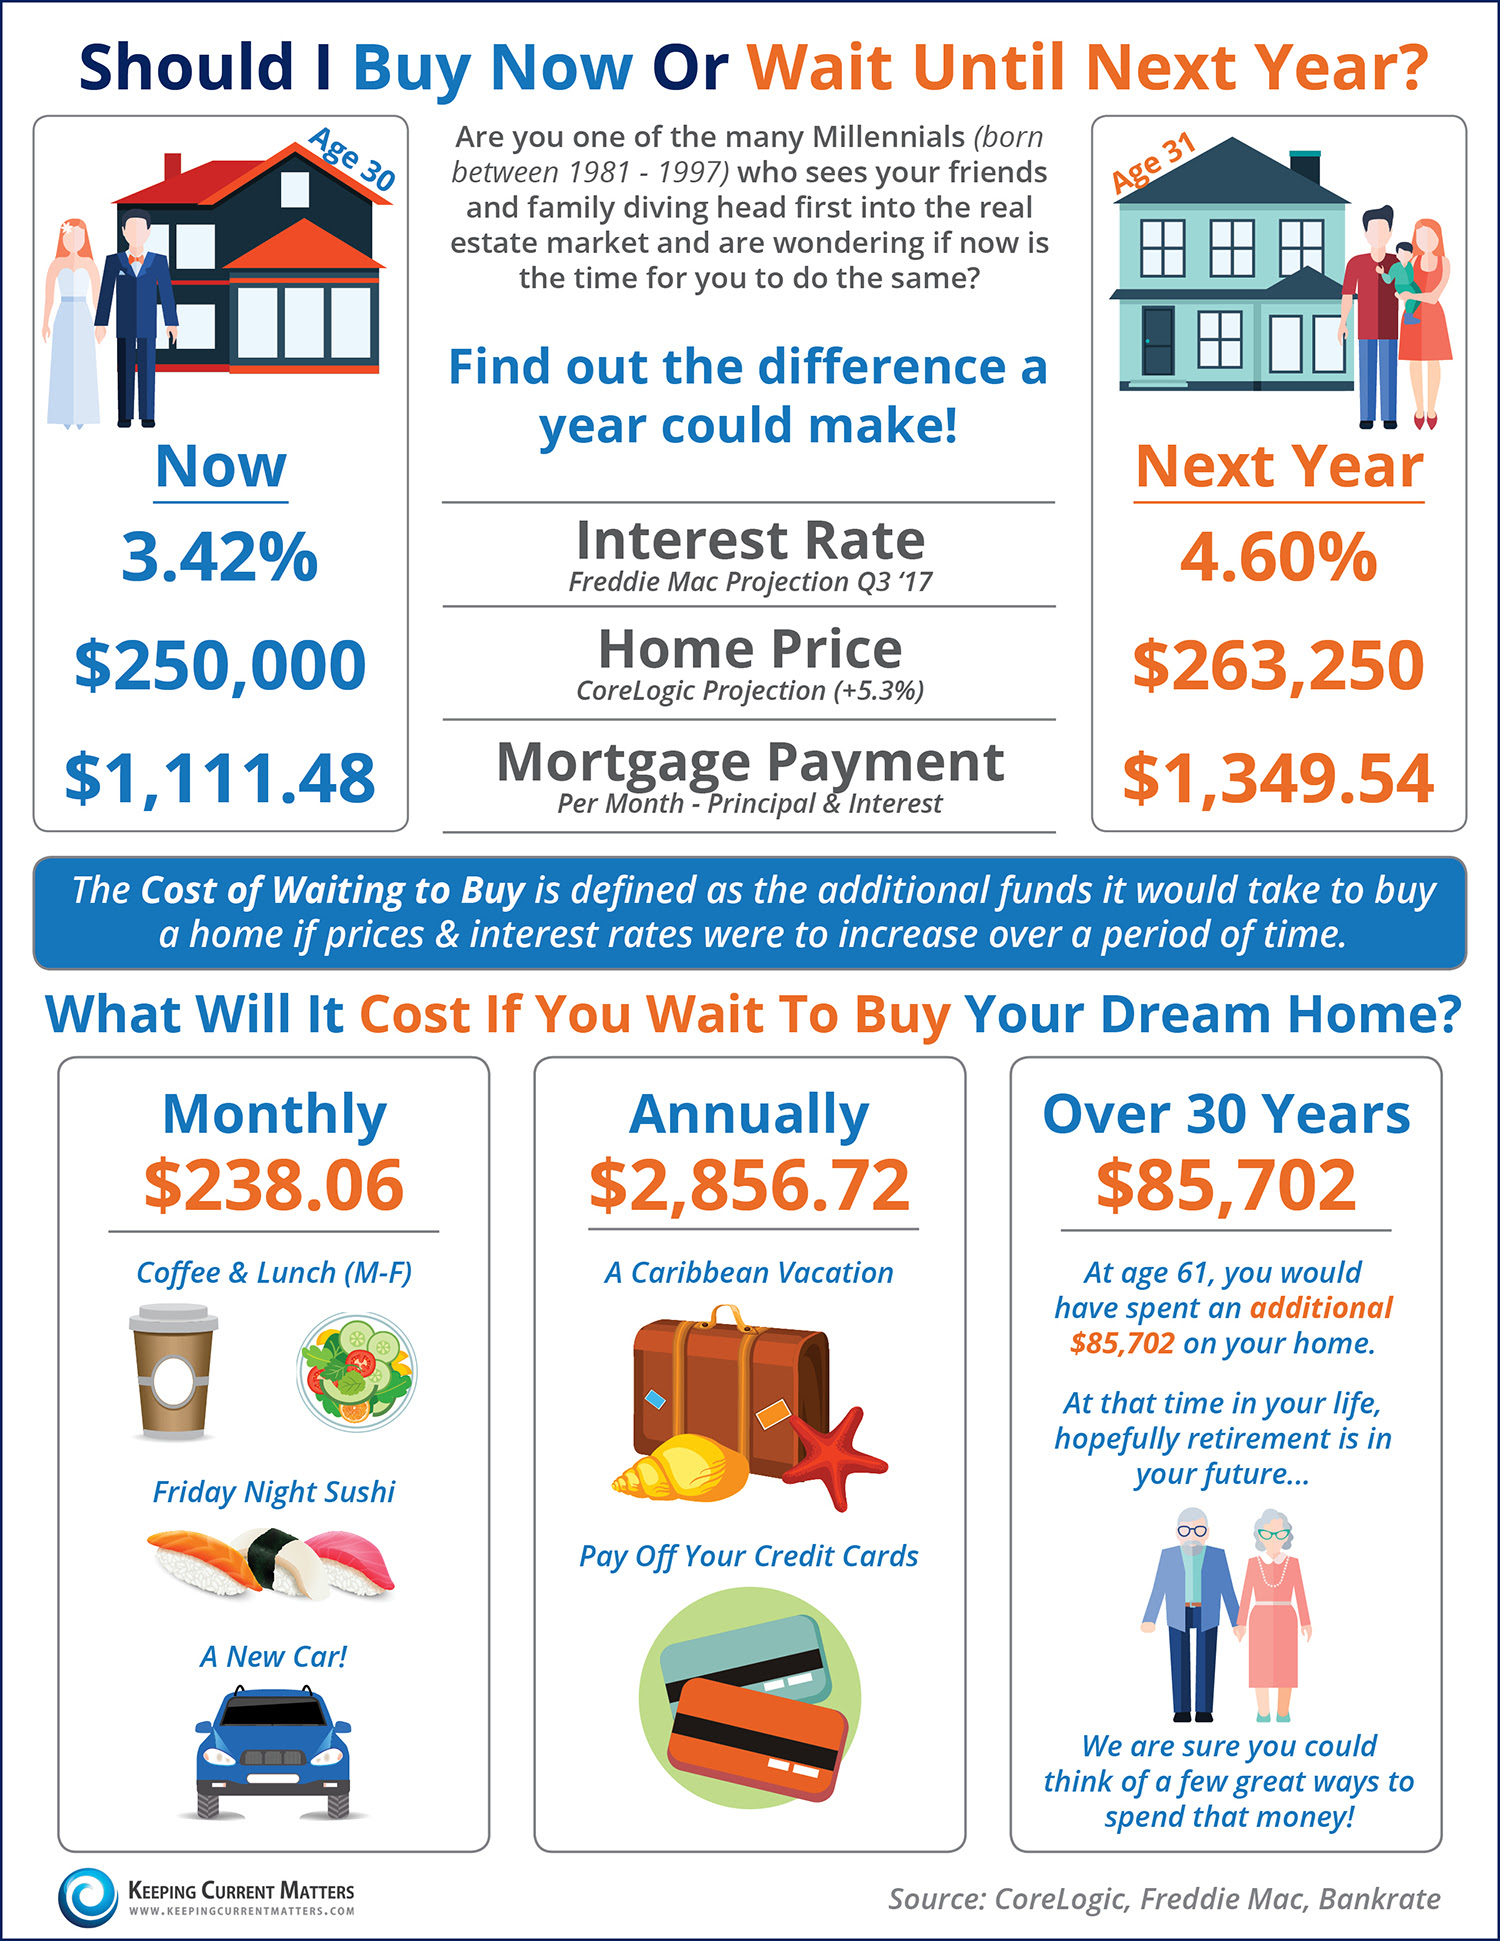 Should I Wait Until Next Year? Or Buy Now? [INFOGRAPHIC] | Keeping Current Matters